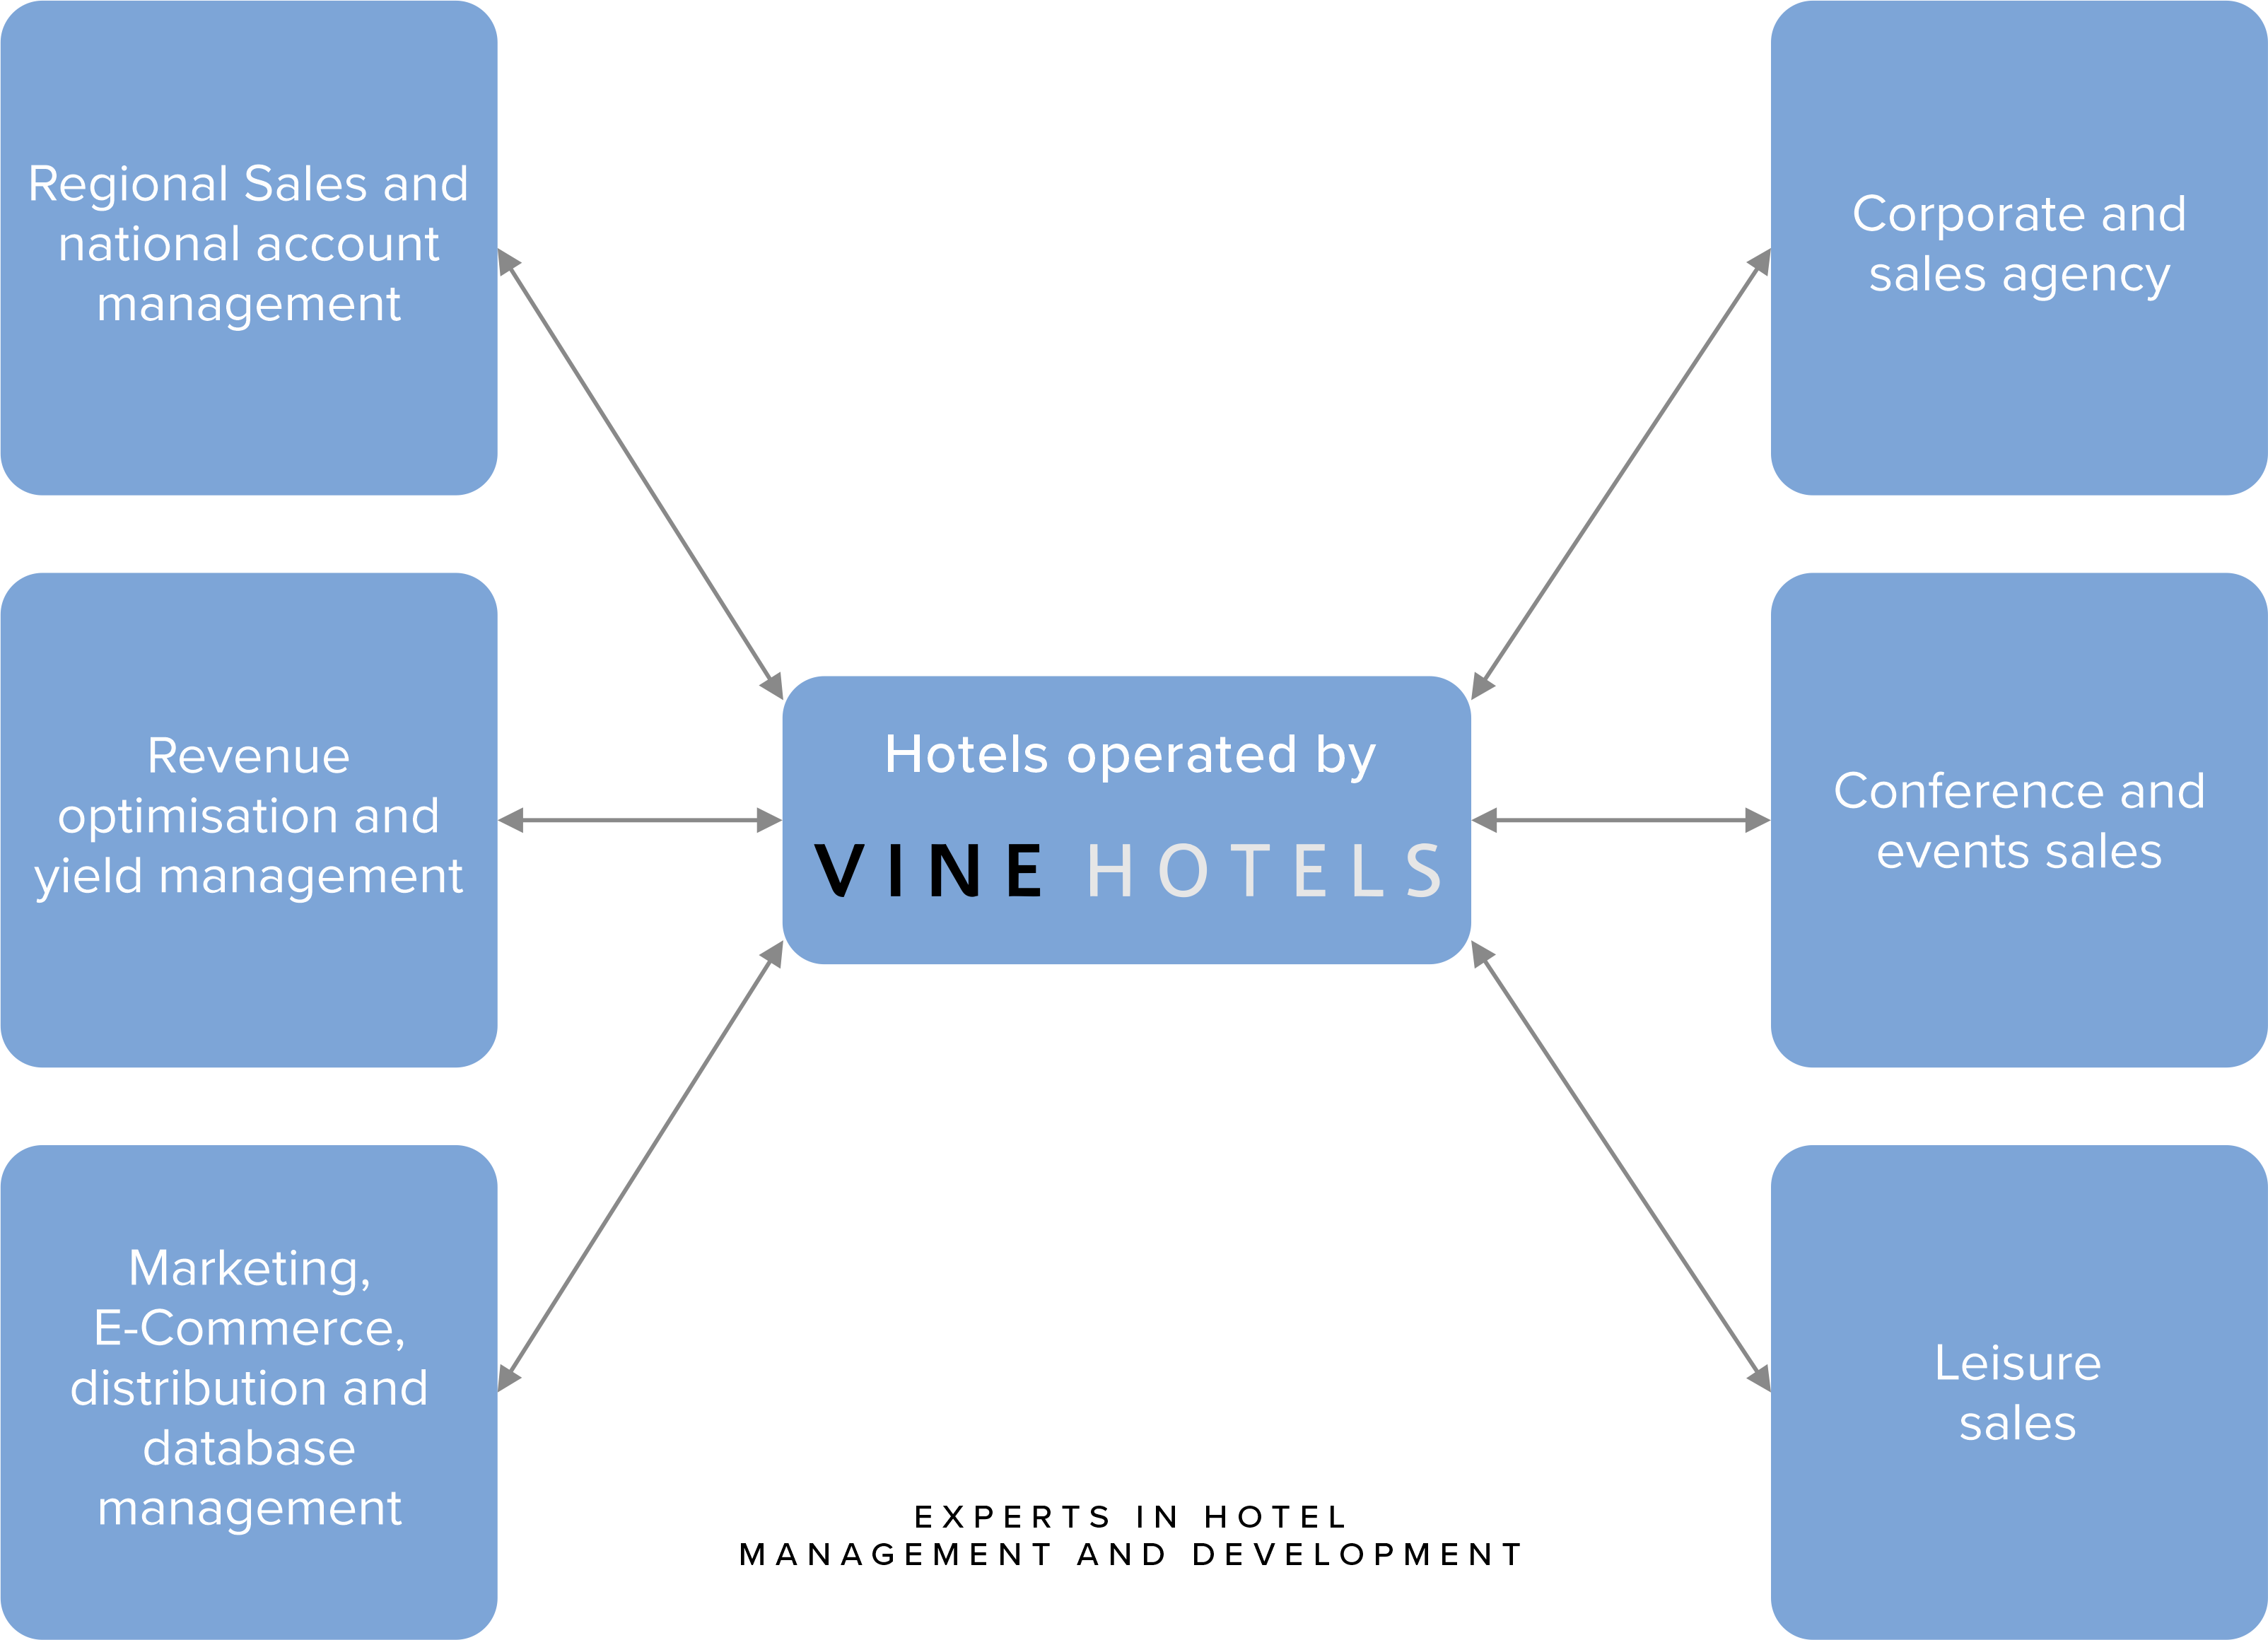 How we support hotel operations